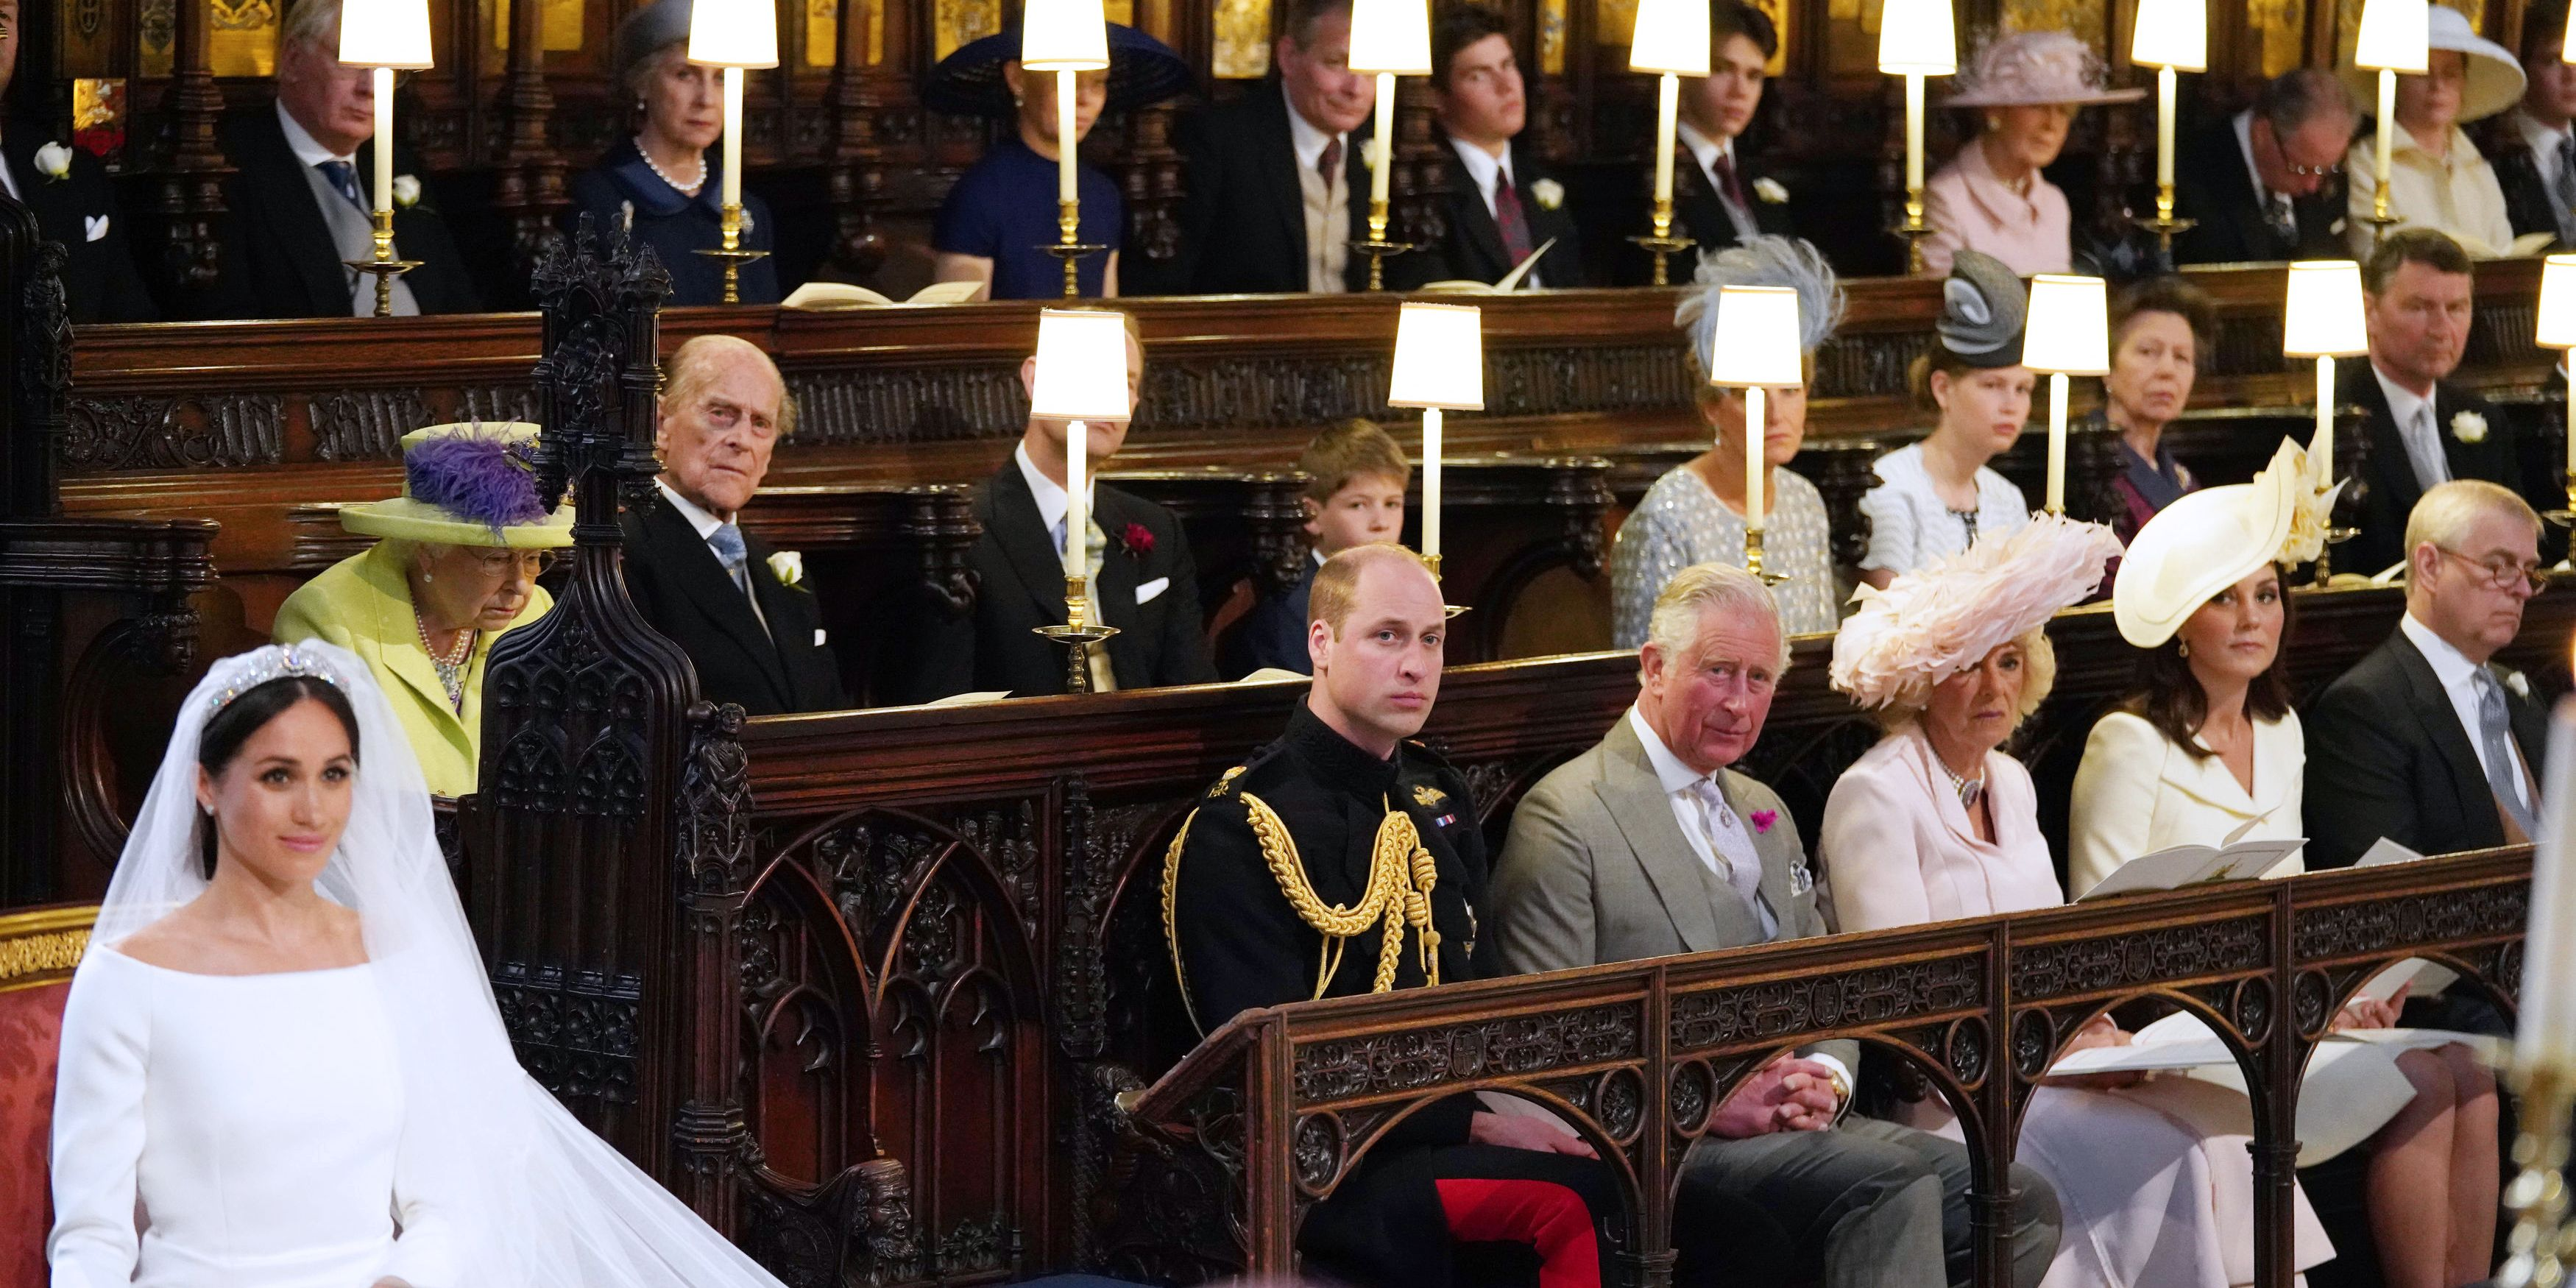 Royal Wedding prince harry meghan markle ceremony seat